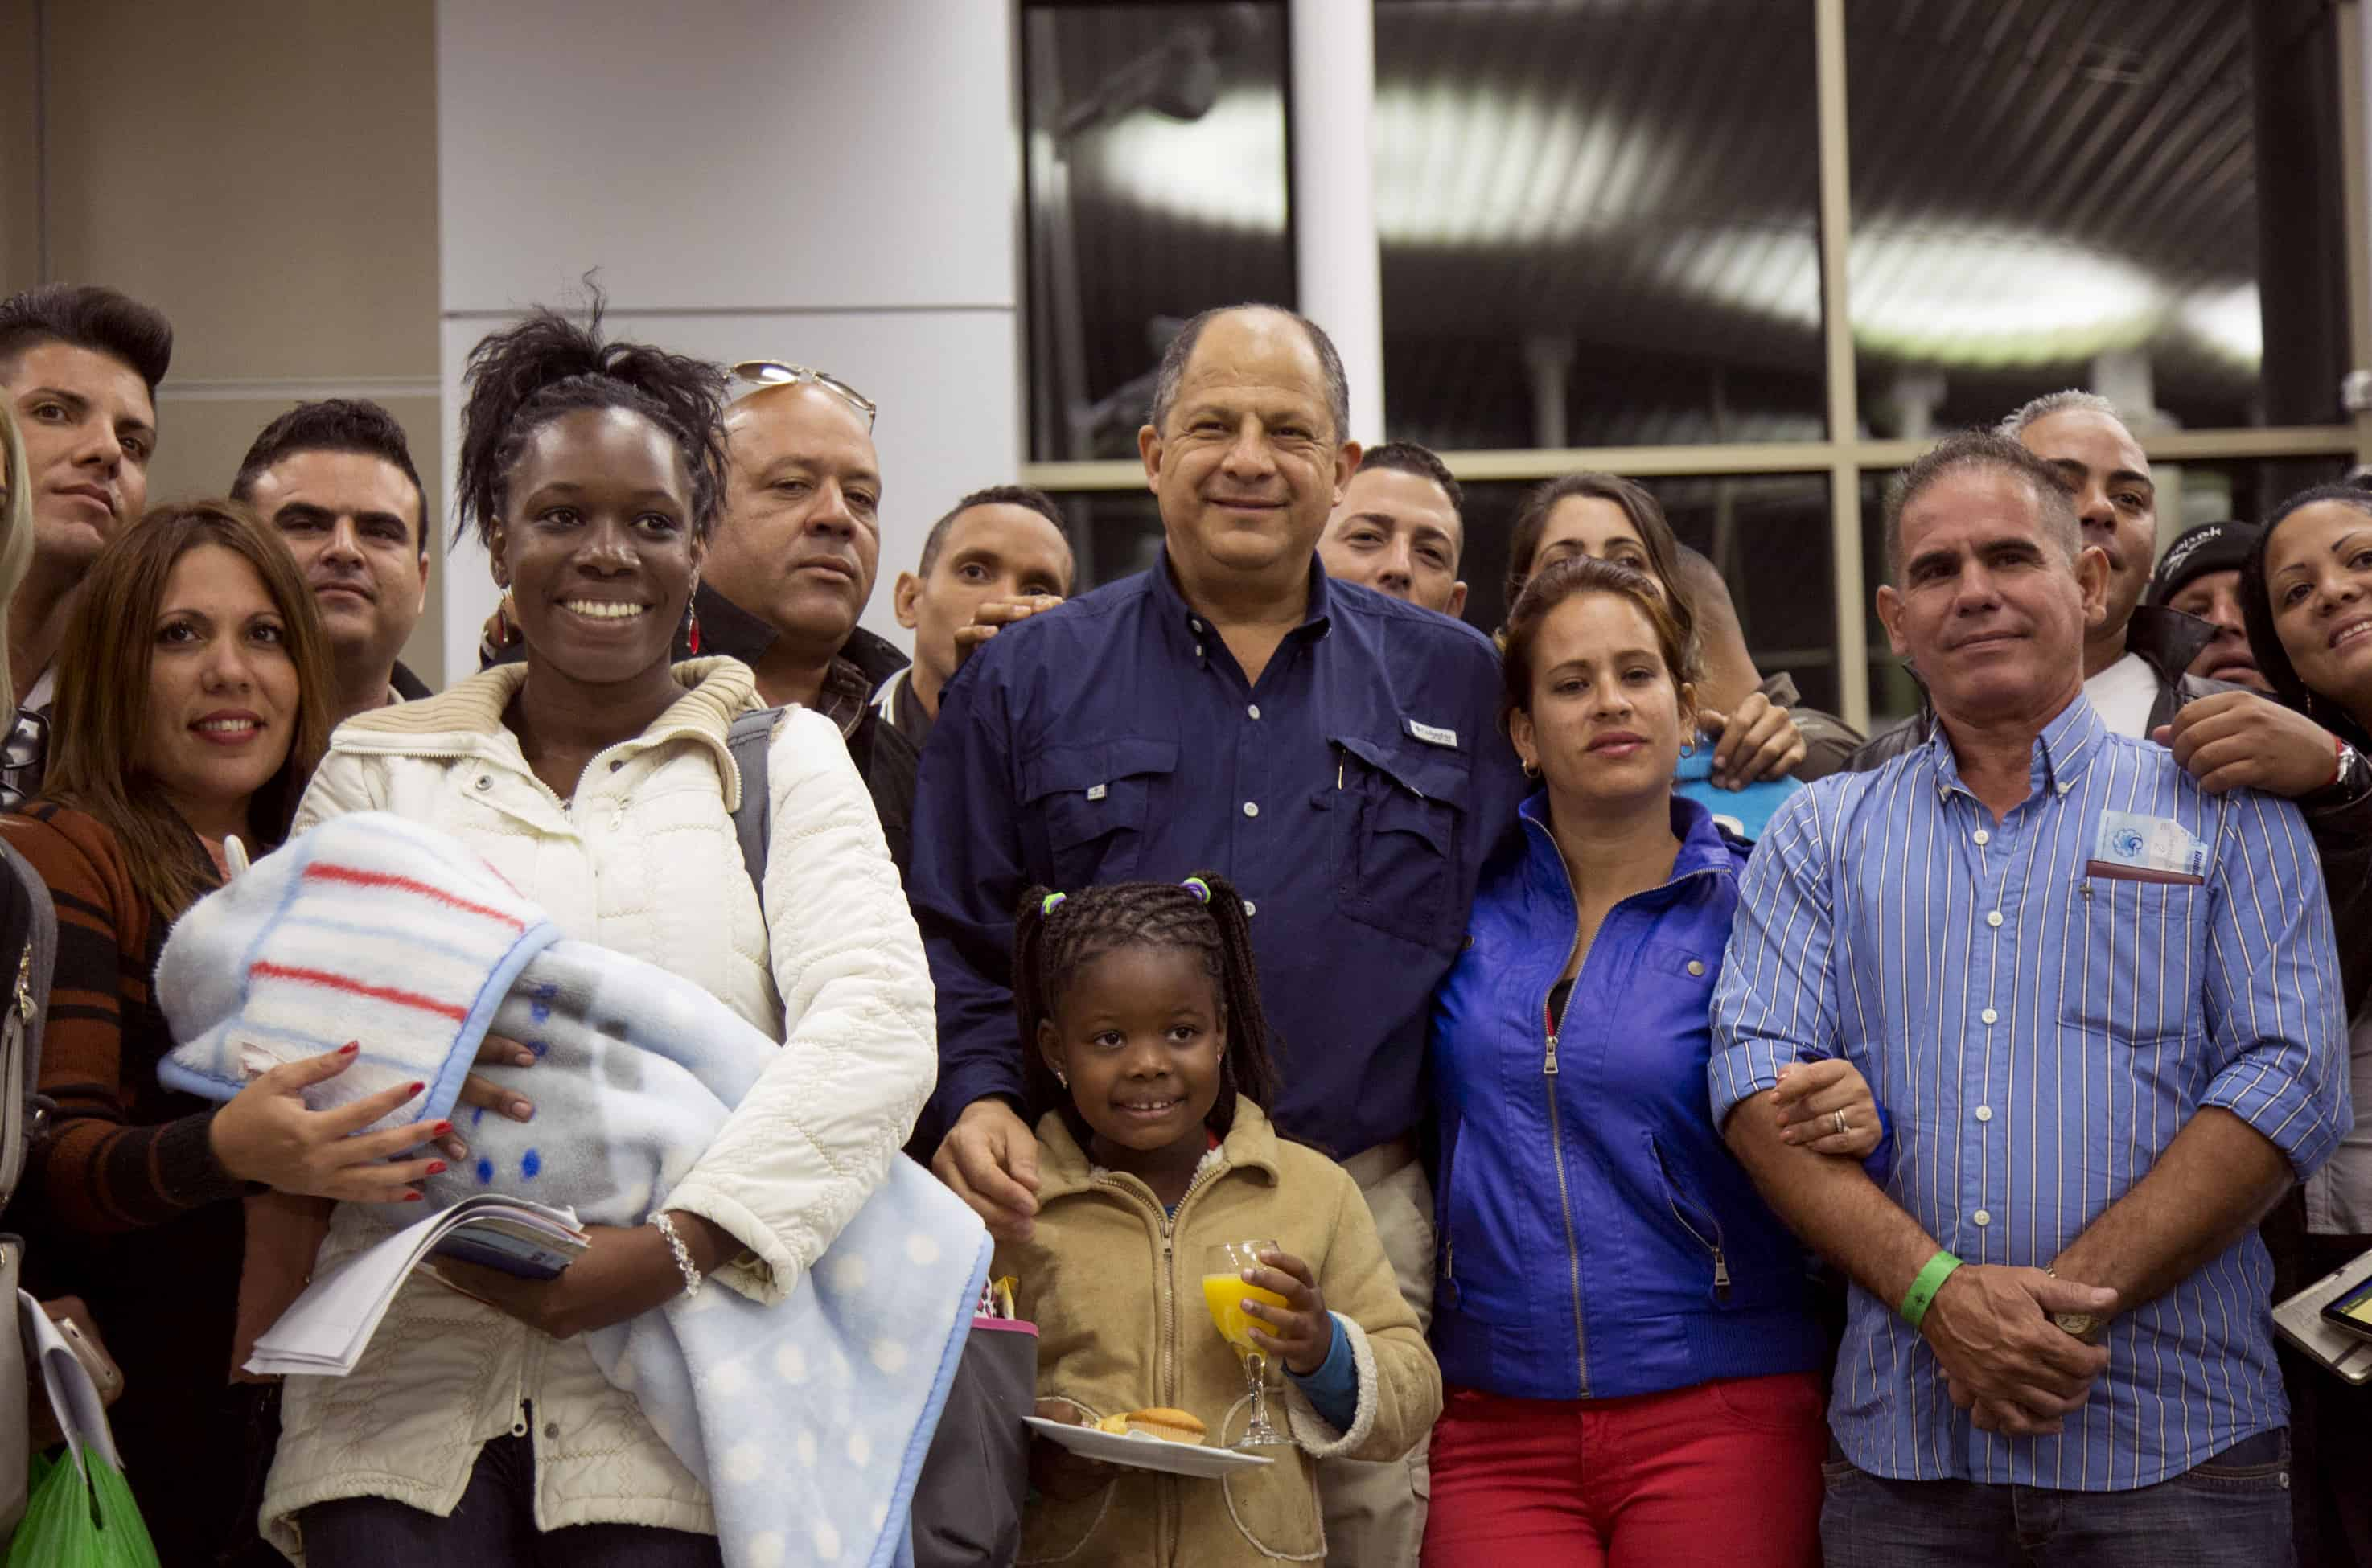 Costa Rica President Luis Guillermo Solís, center, with a group of Cuban migrants